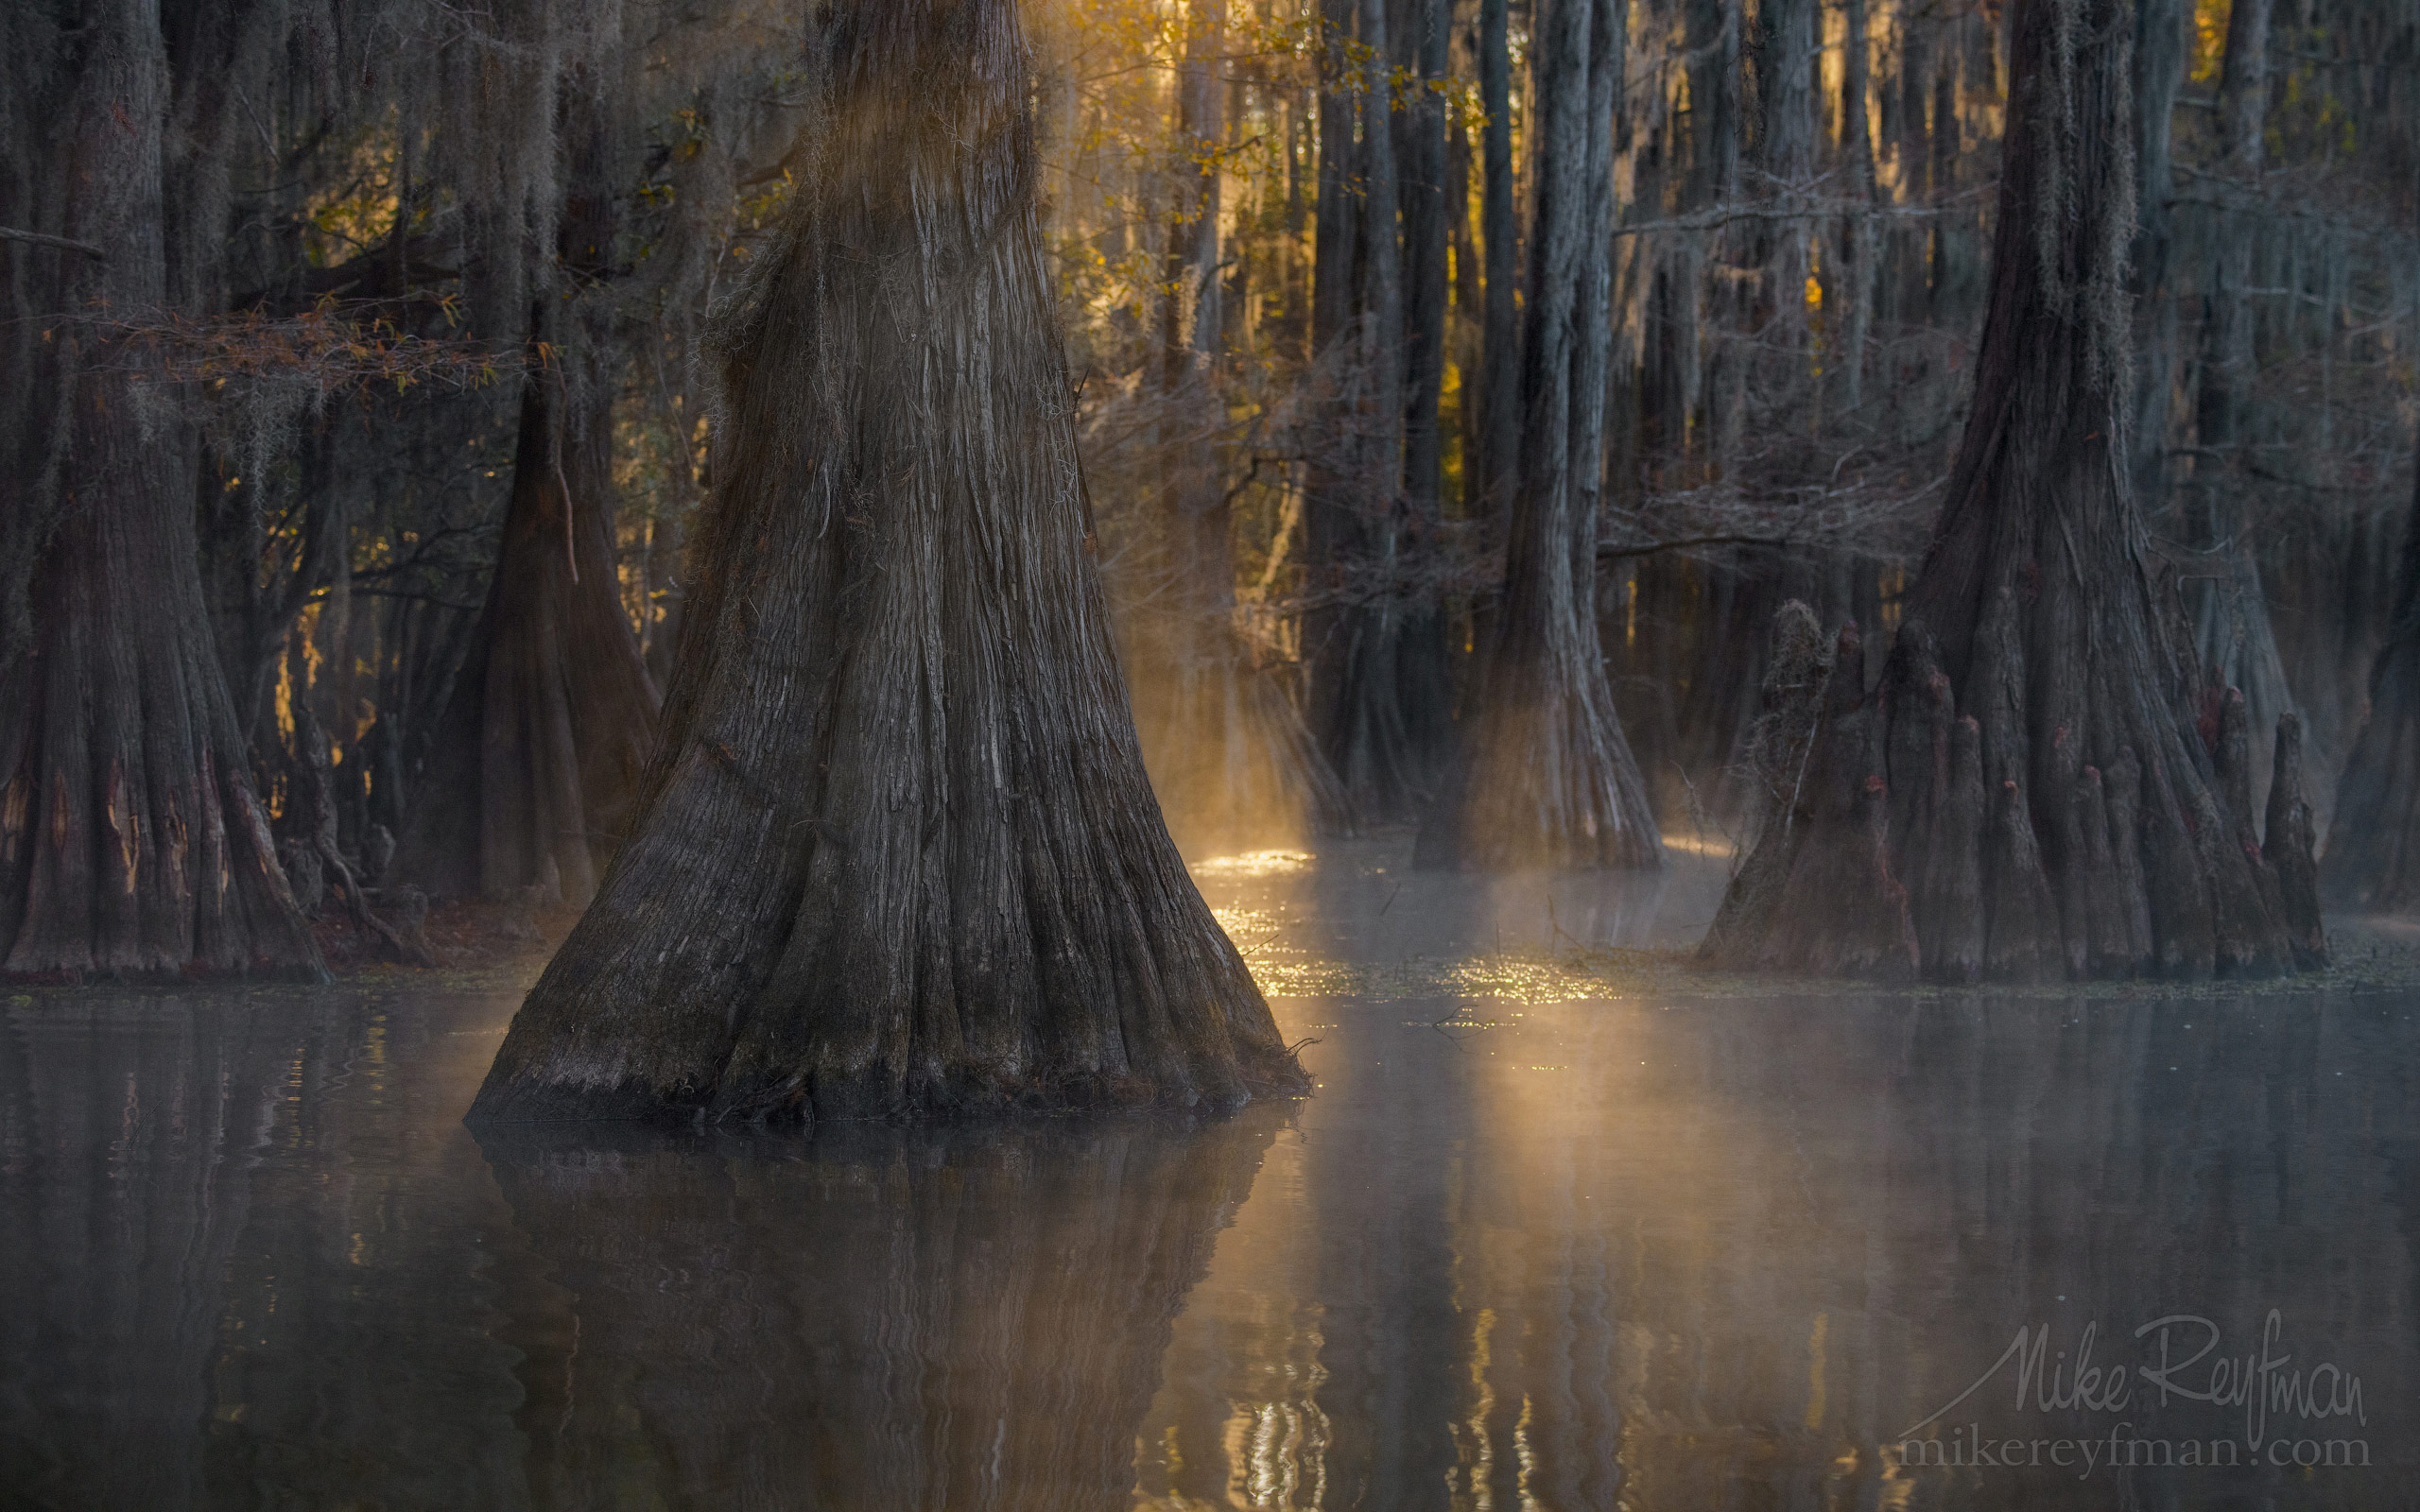 Bald Cypress trees in the swamp. Foggy morning on Caddo Lake, Texas, US 038-LT1-50A3452.jpg - Bold Cypress and Tupelo Trees in the swamps of Atchafalaya River Basin. Caddo, Martin and Fousse Lakes. Texas/Louisiana, USA. - Mike Reyfman Photography